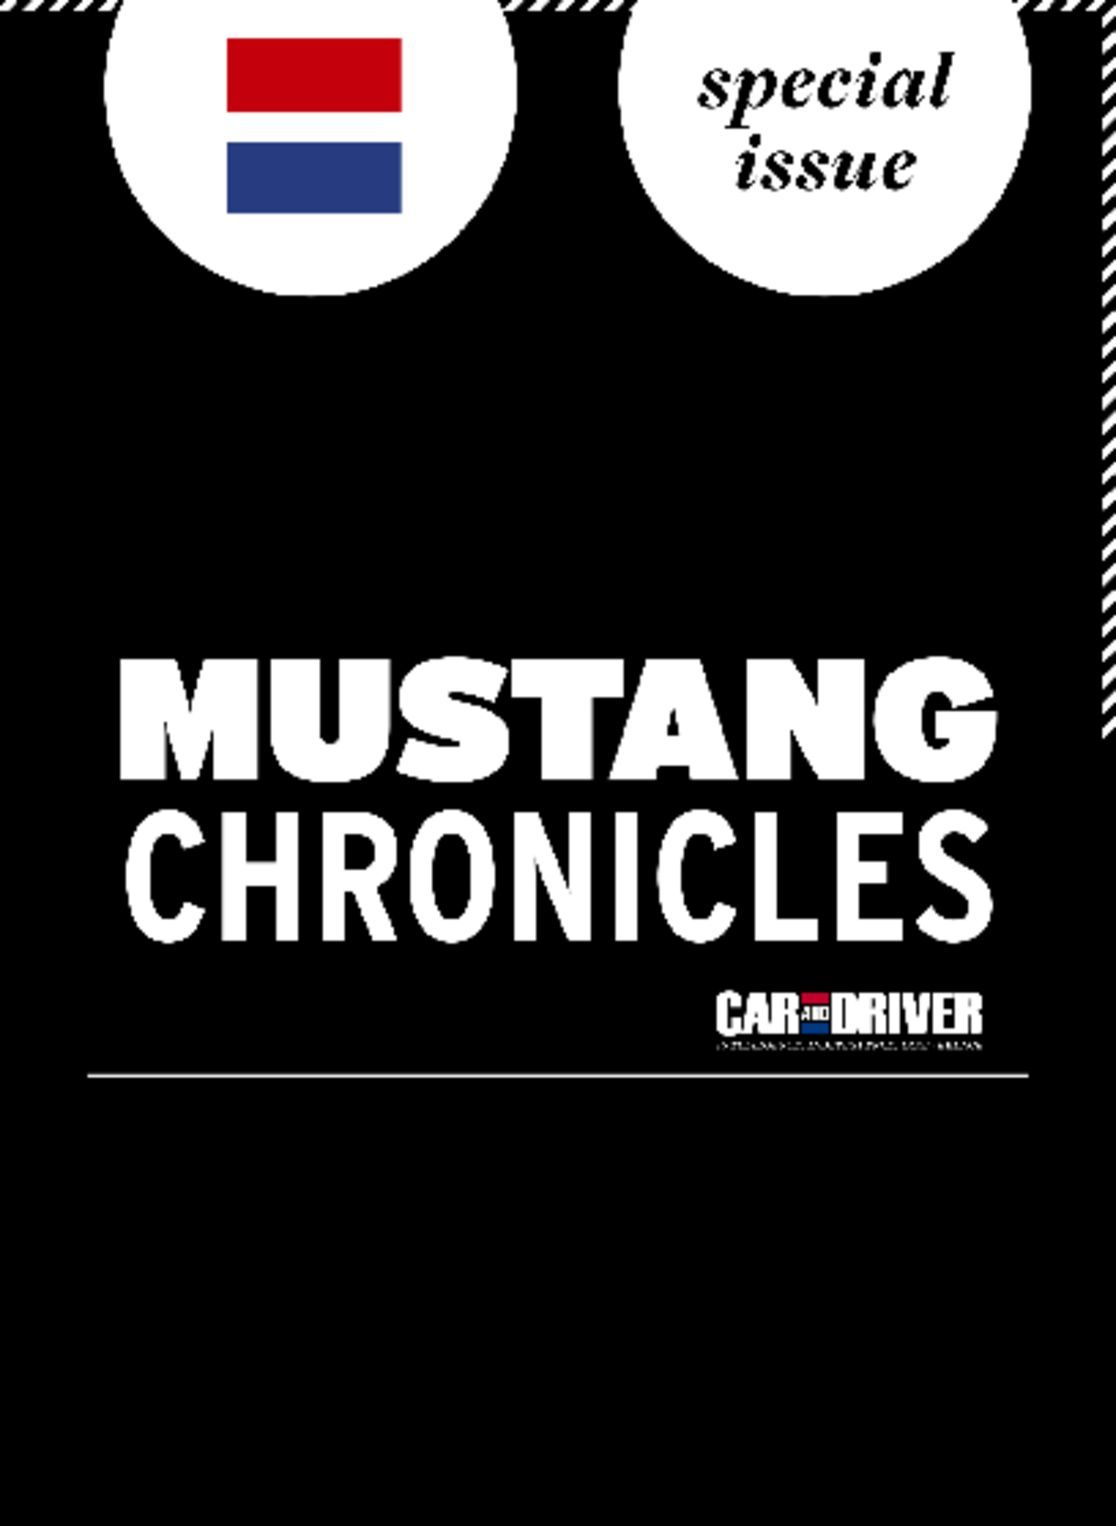 Mustang Chronicles Digital